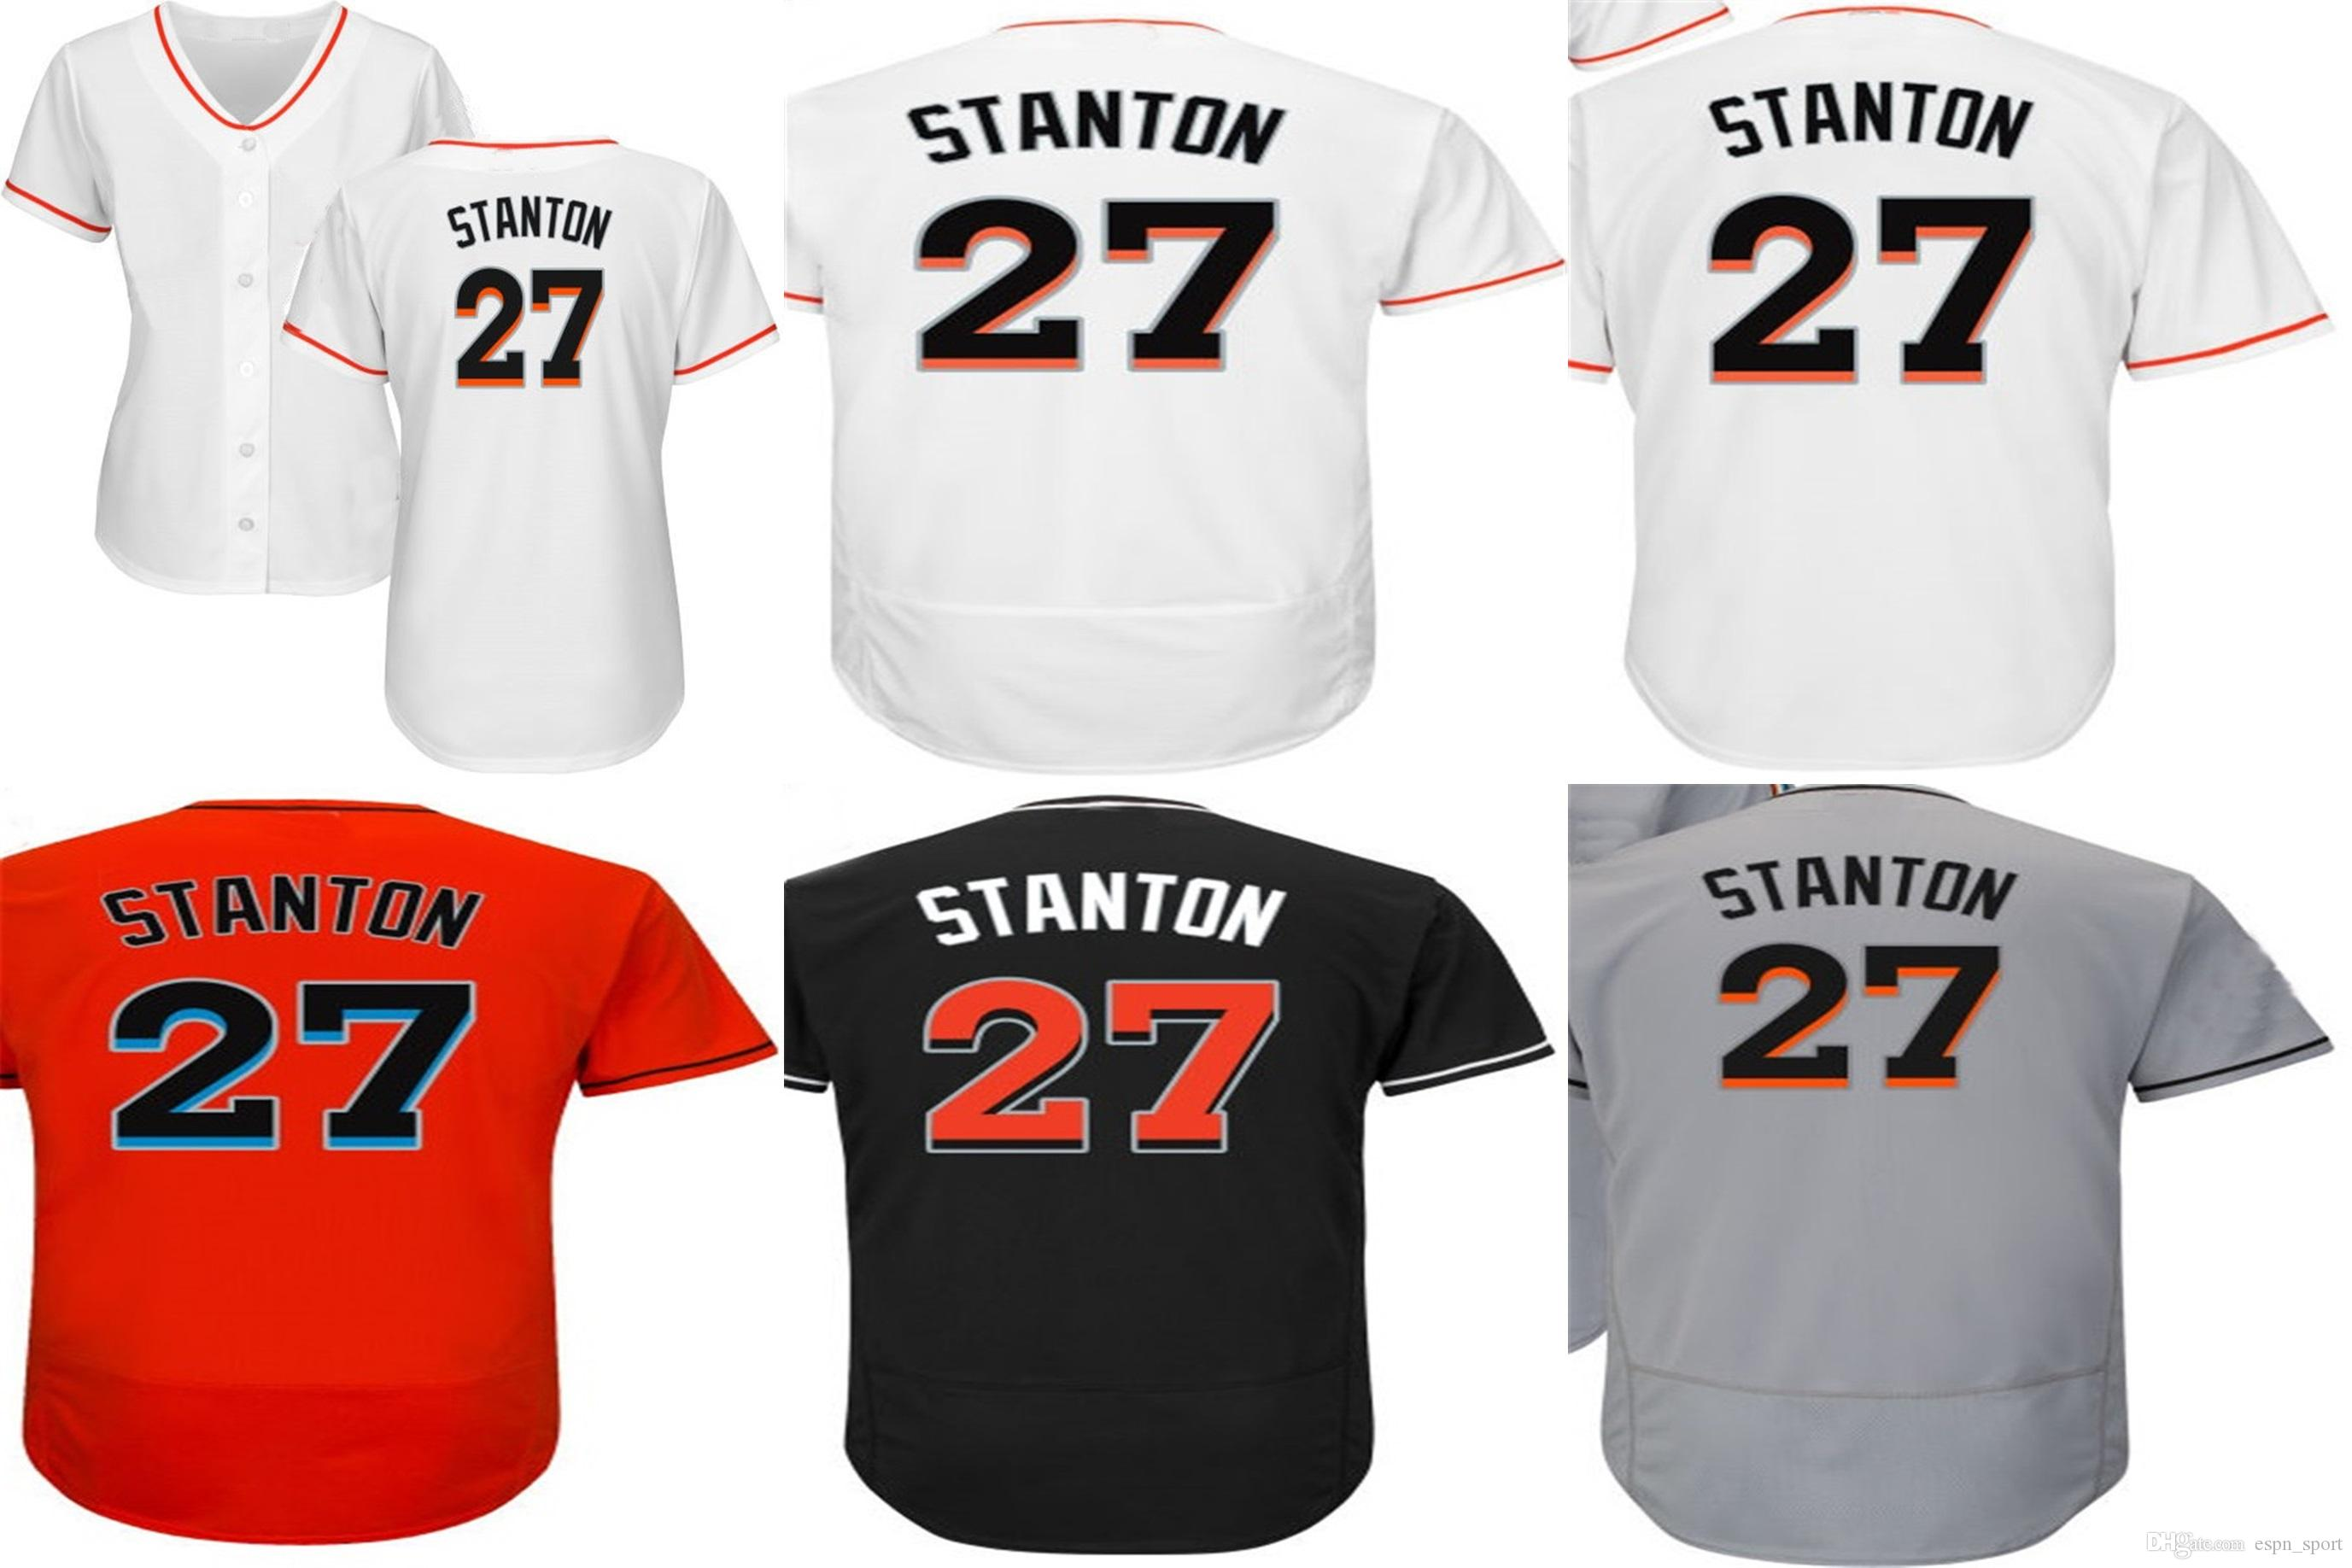 4ec17a3ec 2015 Miami Mens  27 Giancarlo Stanton Grey Orange White Black Cool ...